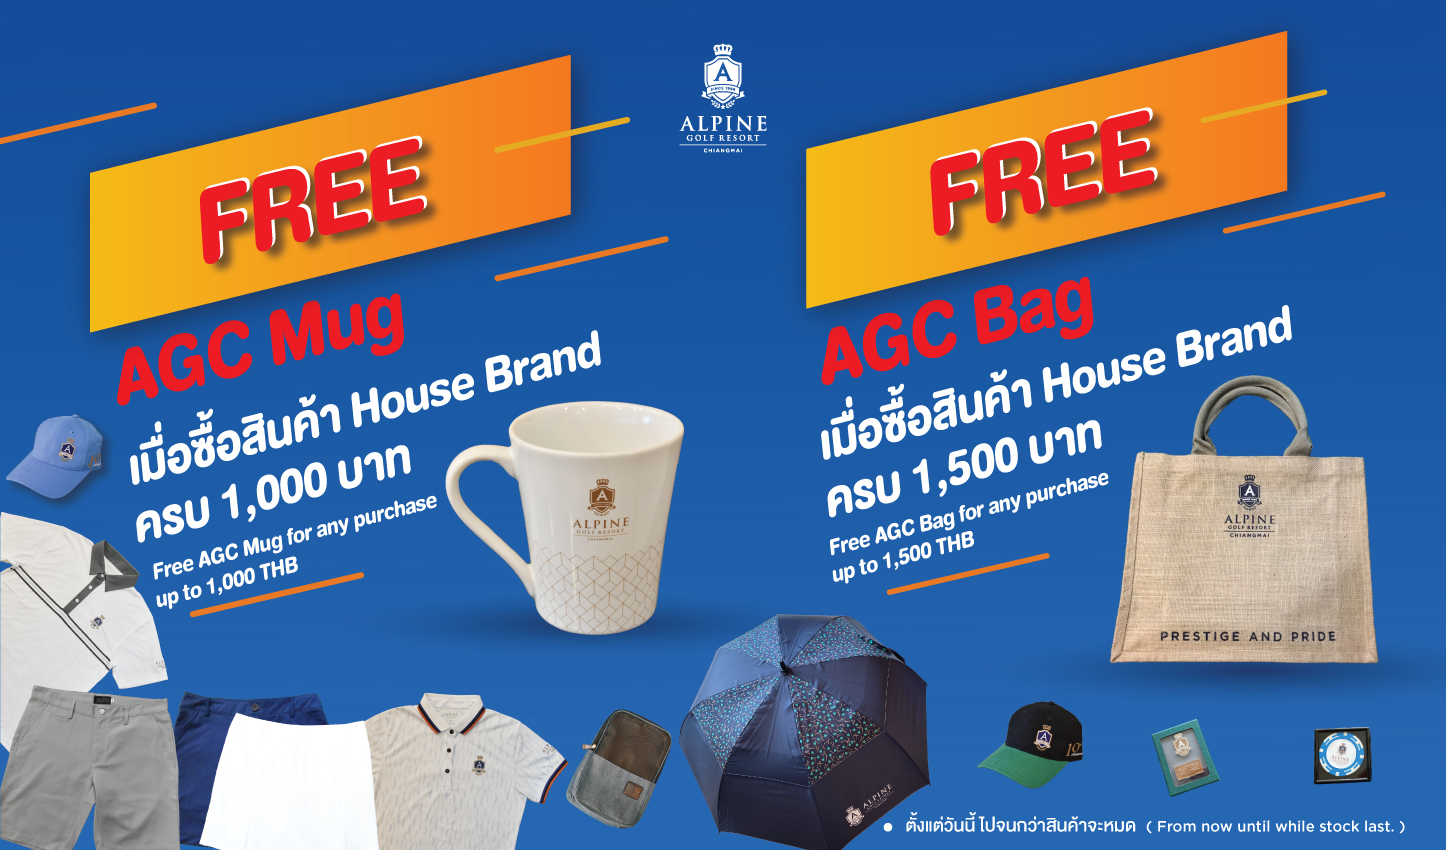 Proshop House Brand Product